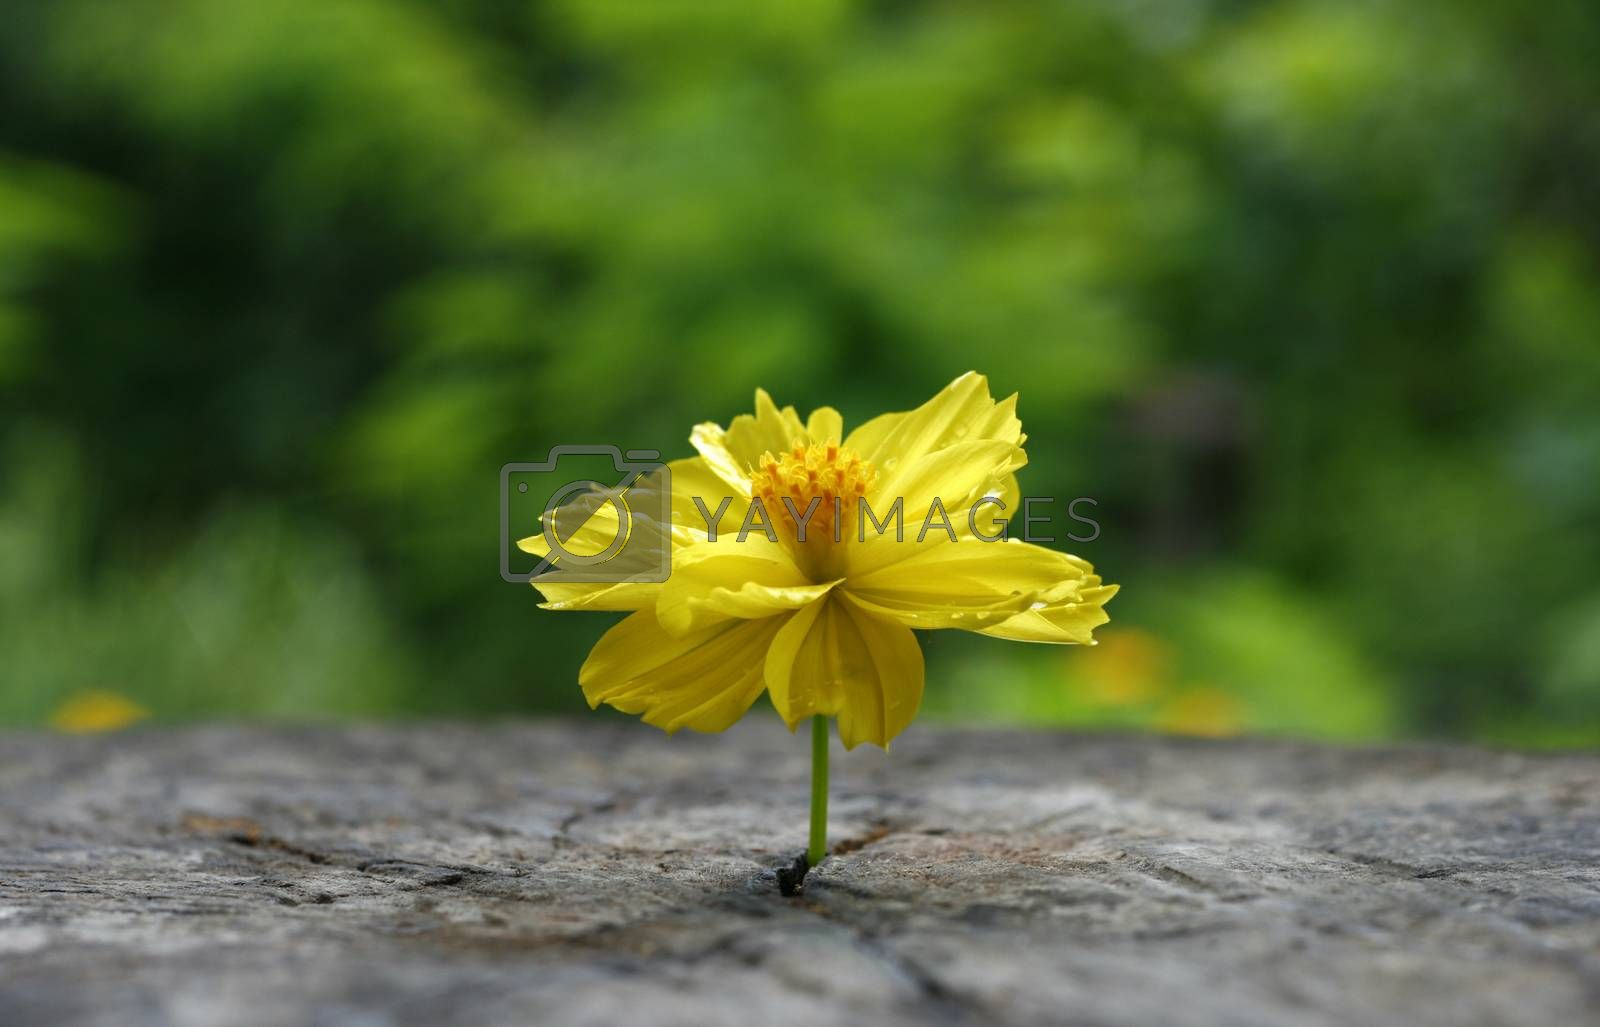 Marigold on grunge wooden table